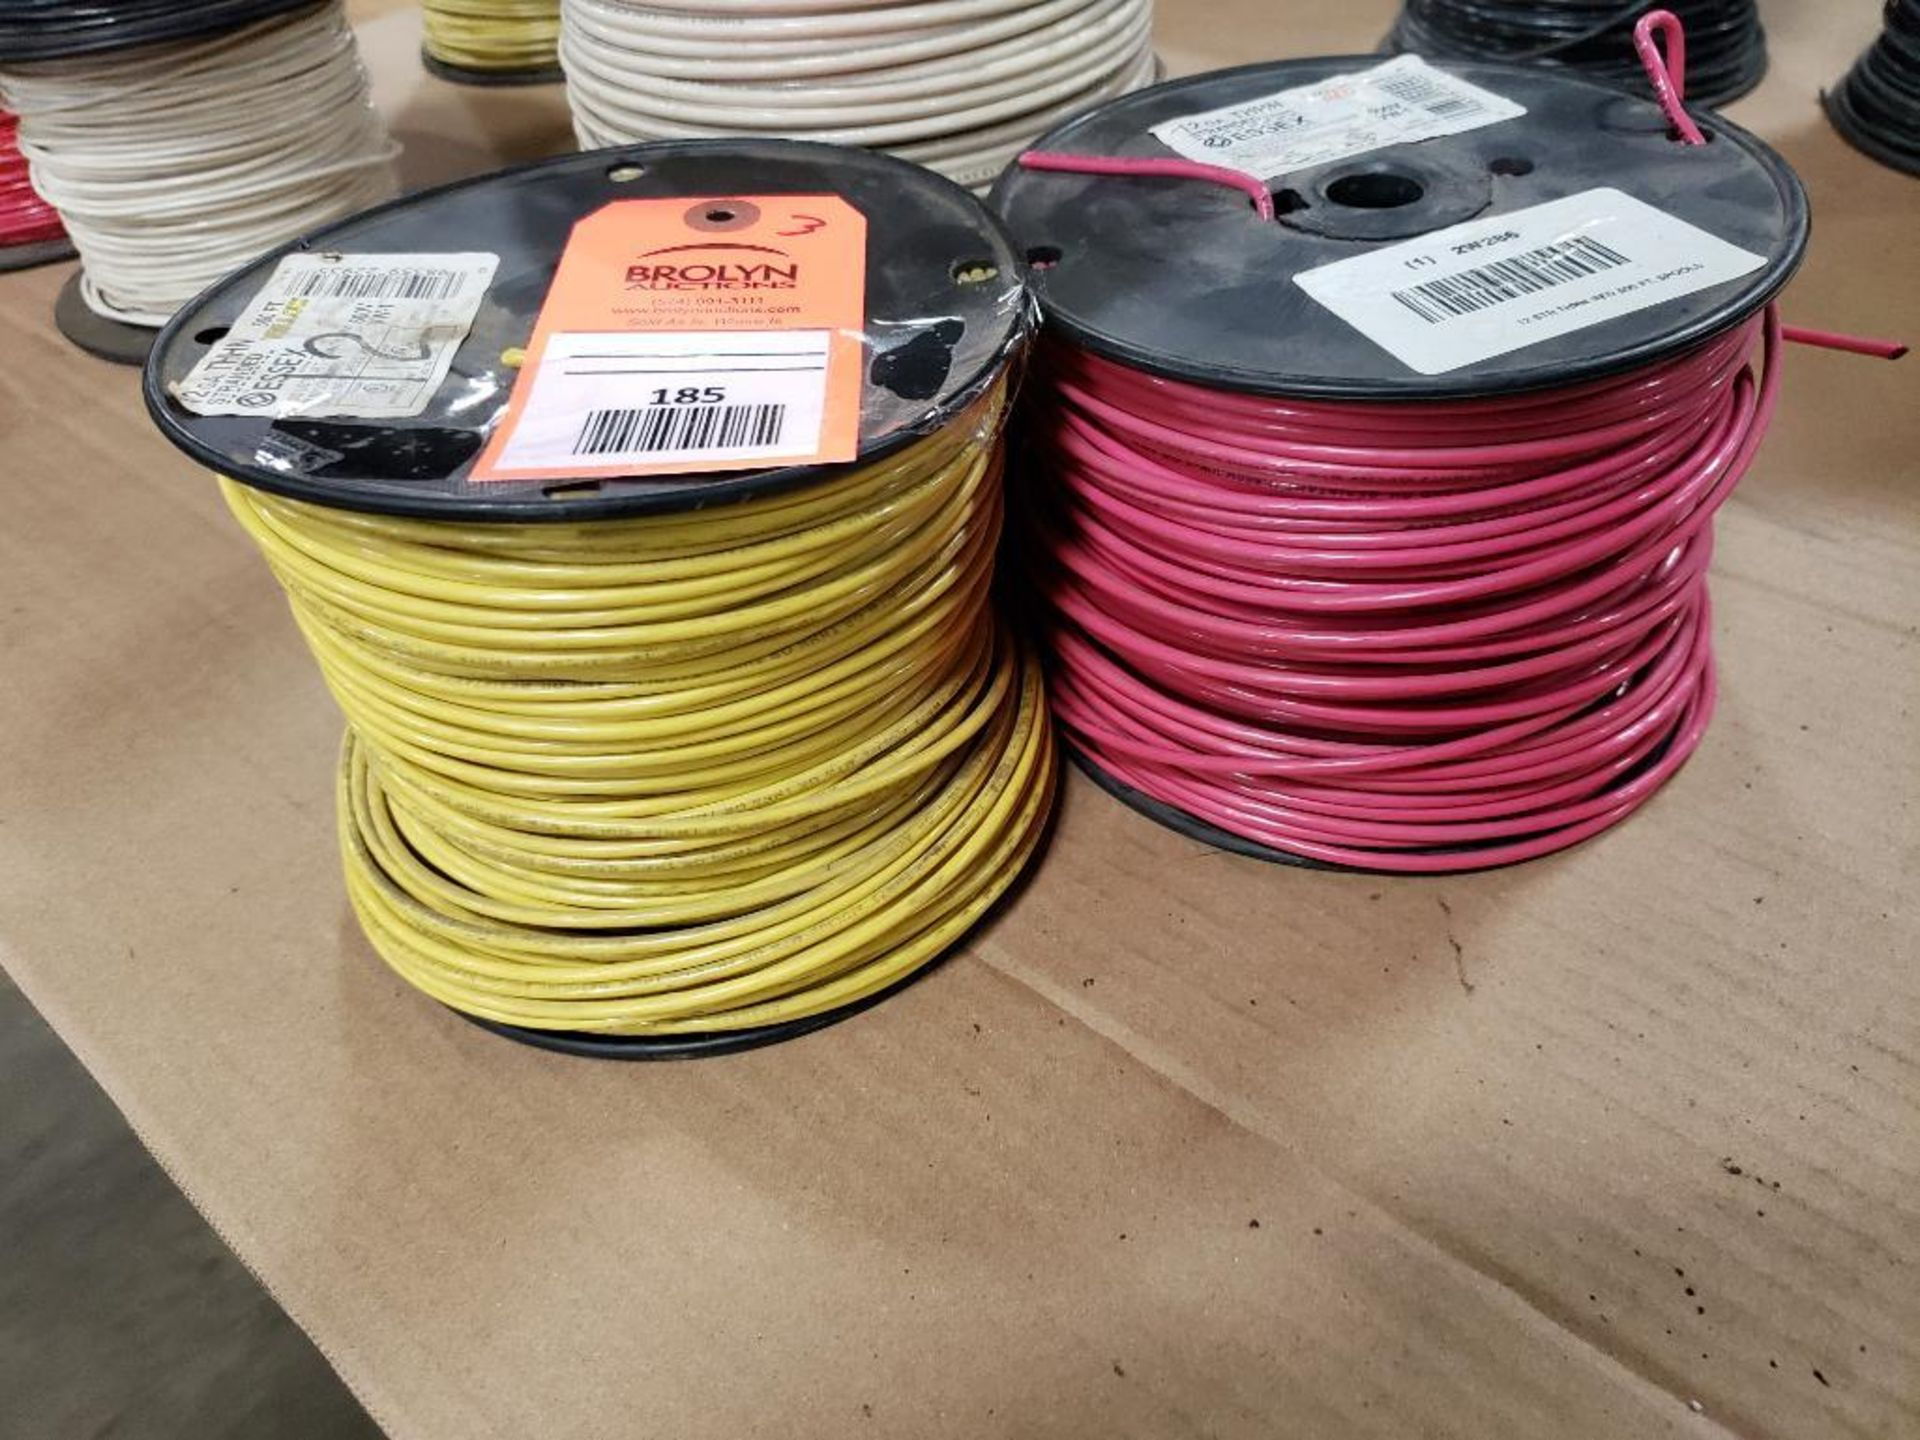 Qty 3 - Spool of ESSEX contractor wire. 12-RED THHN stranded, 10-WHITE. - Image 5 of 6